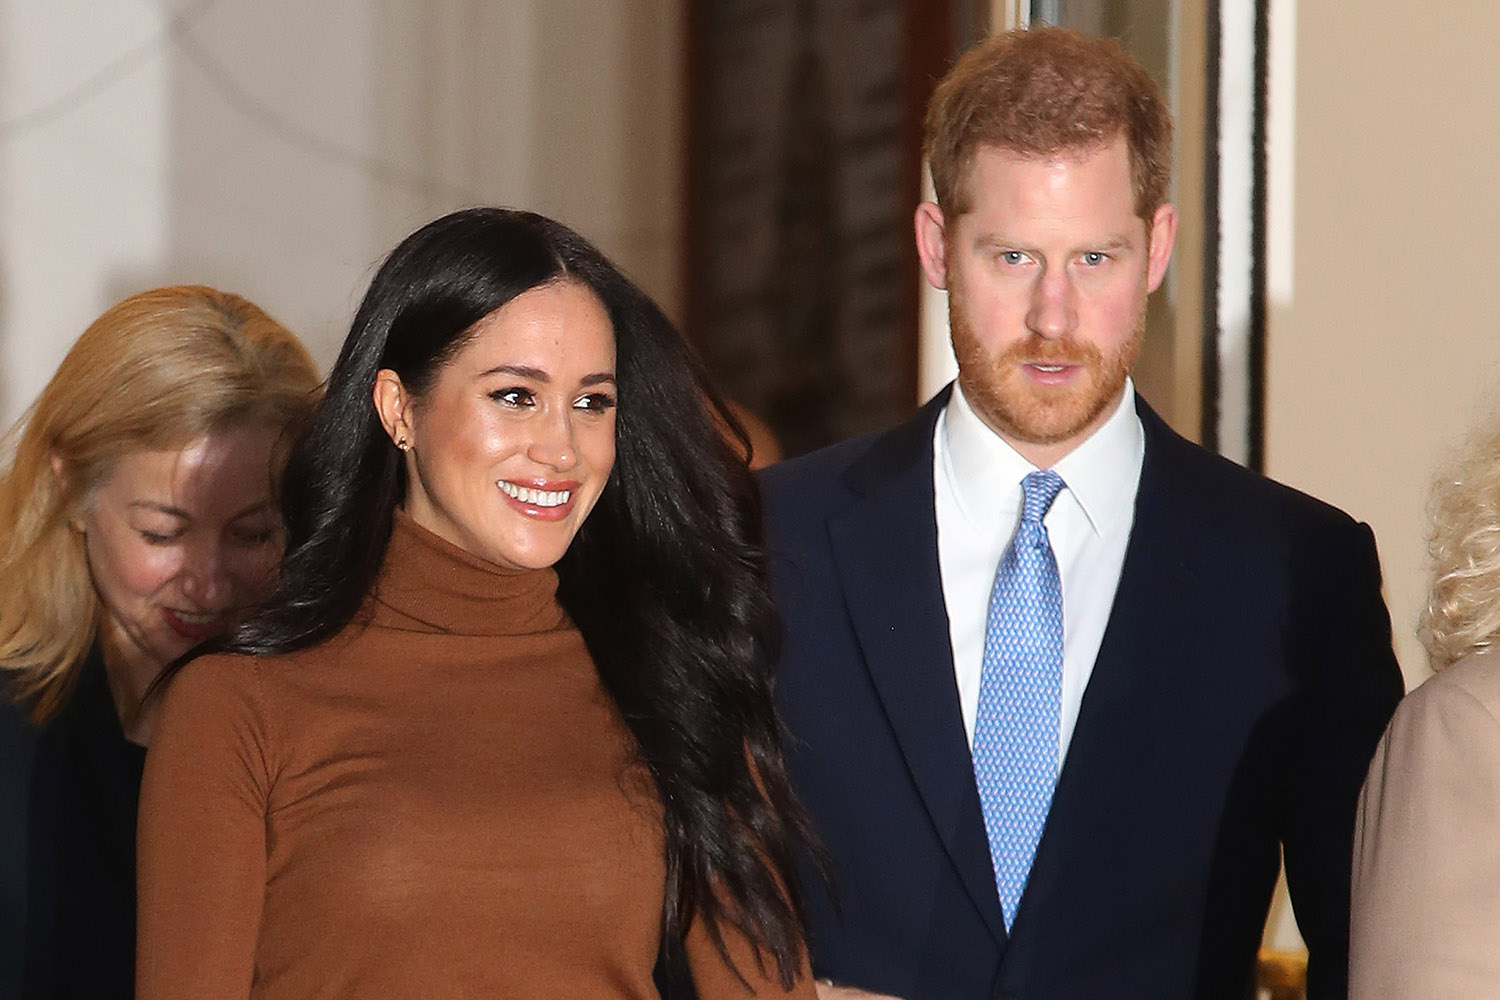 Meghan and Prince Harry 'set up permanent home in California' after leaving Canada